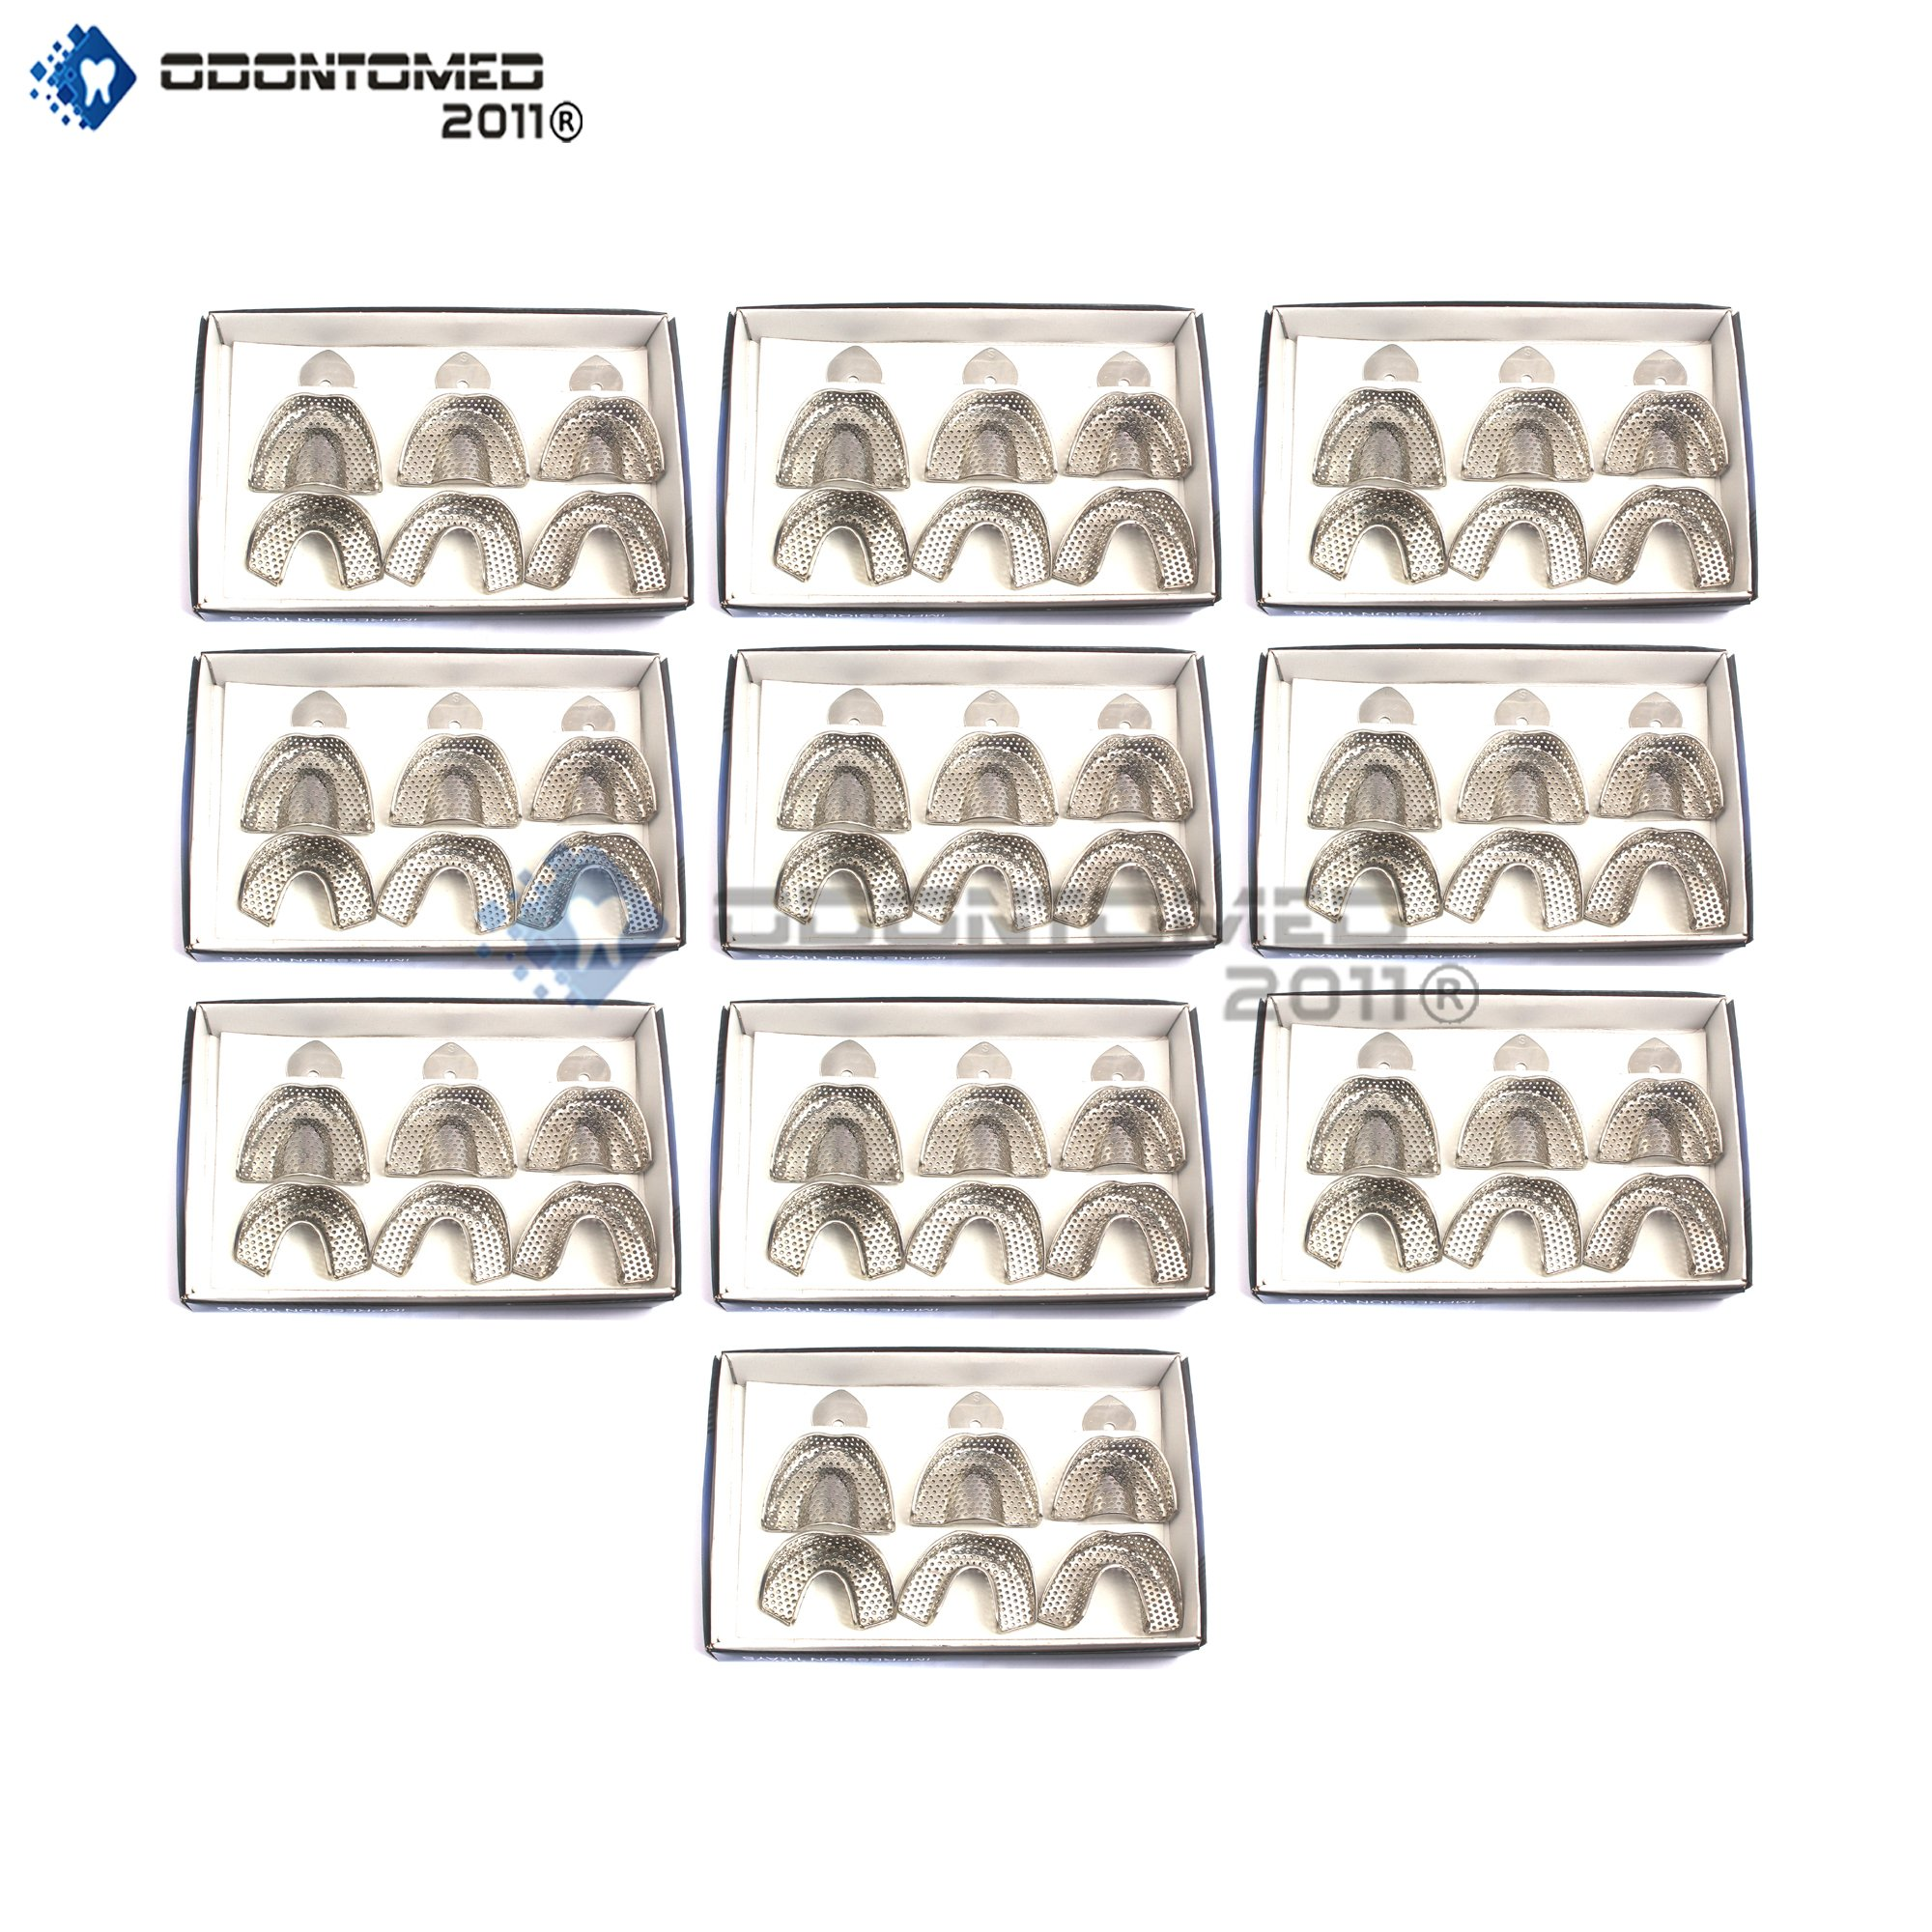 OdontoMed2011 10 Set Of 6 Pieces Dental Impression Trays Baby Perforated Denture Instruments Stainless Steel ODM